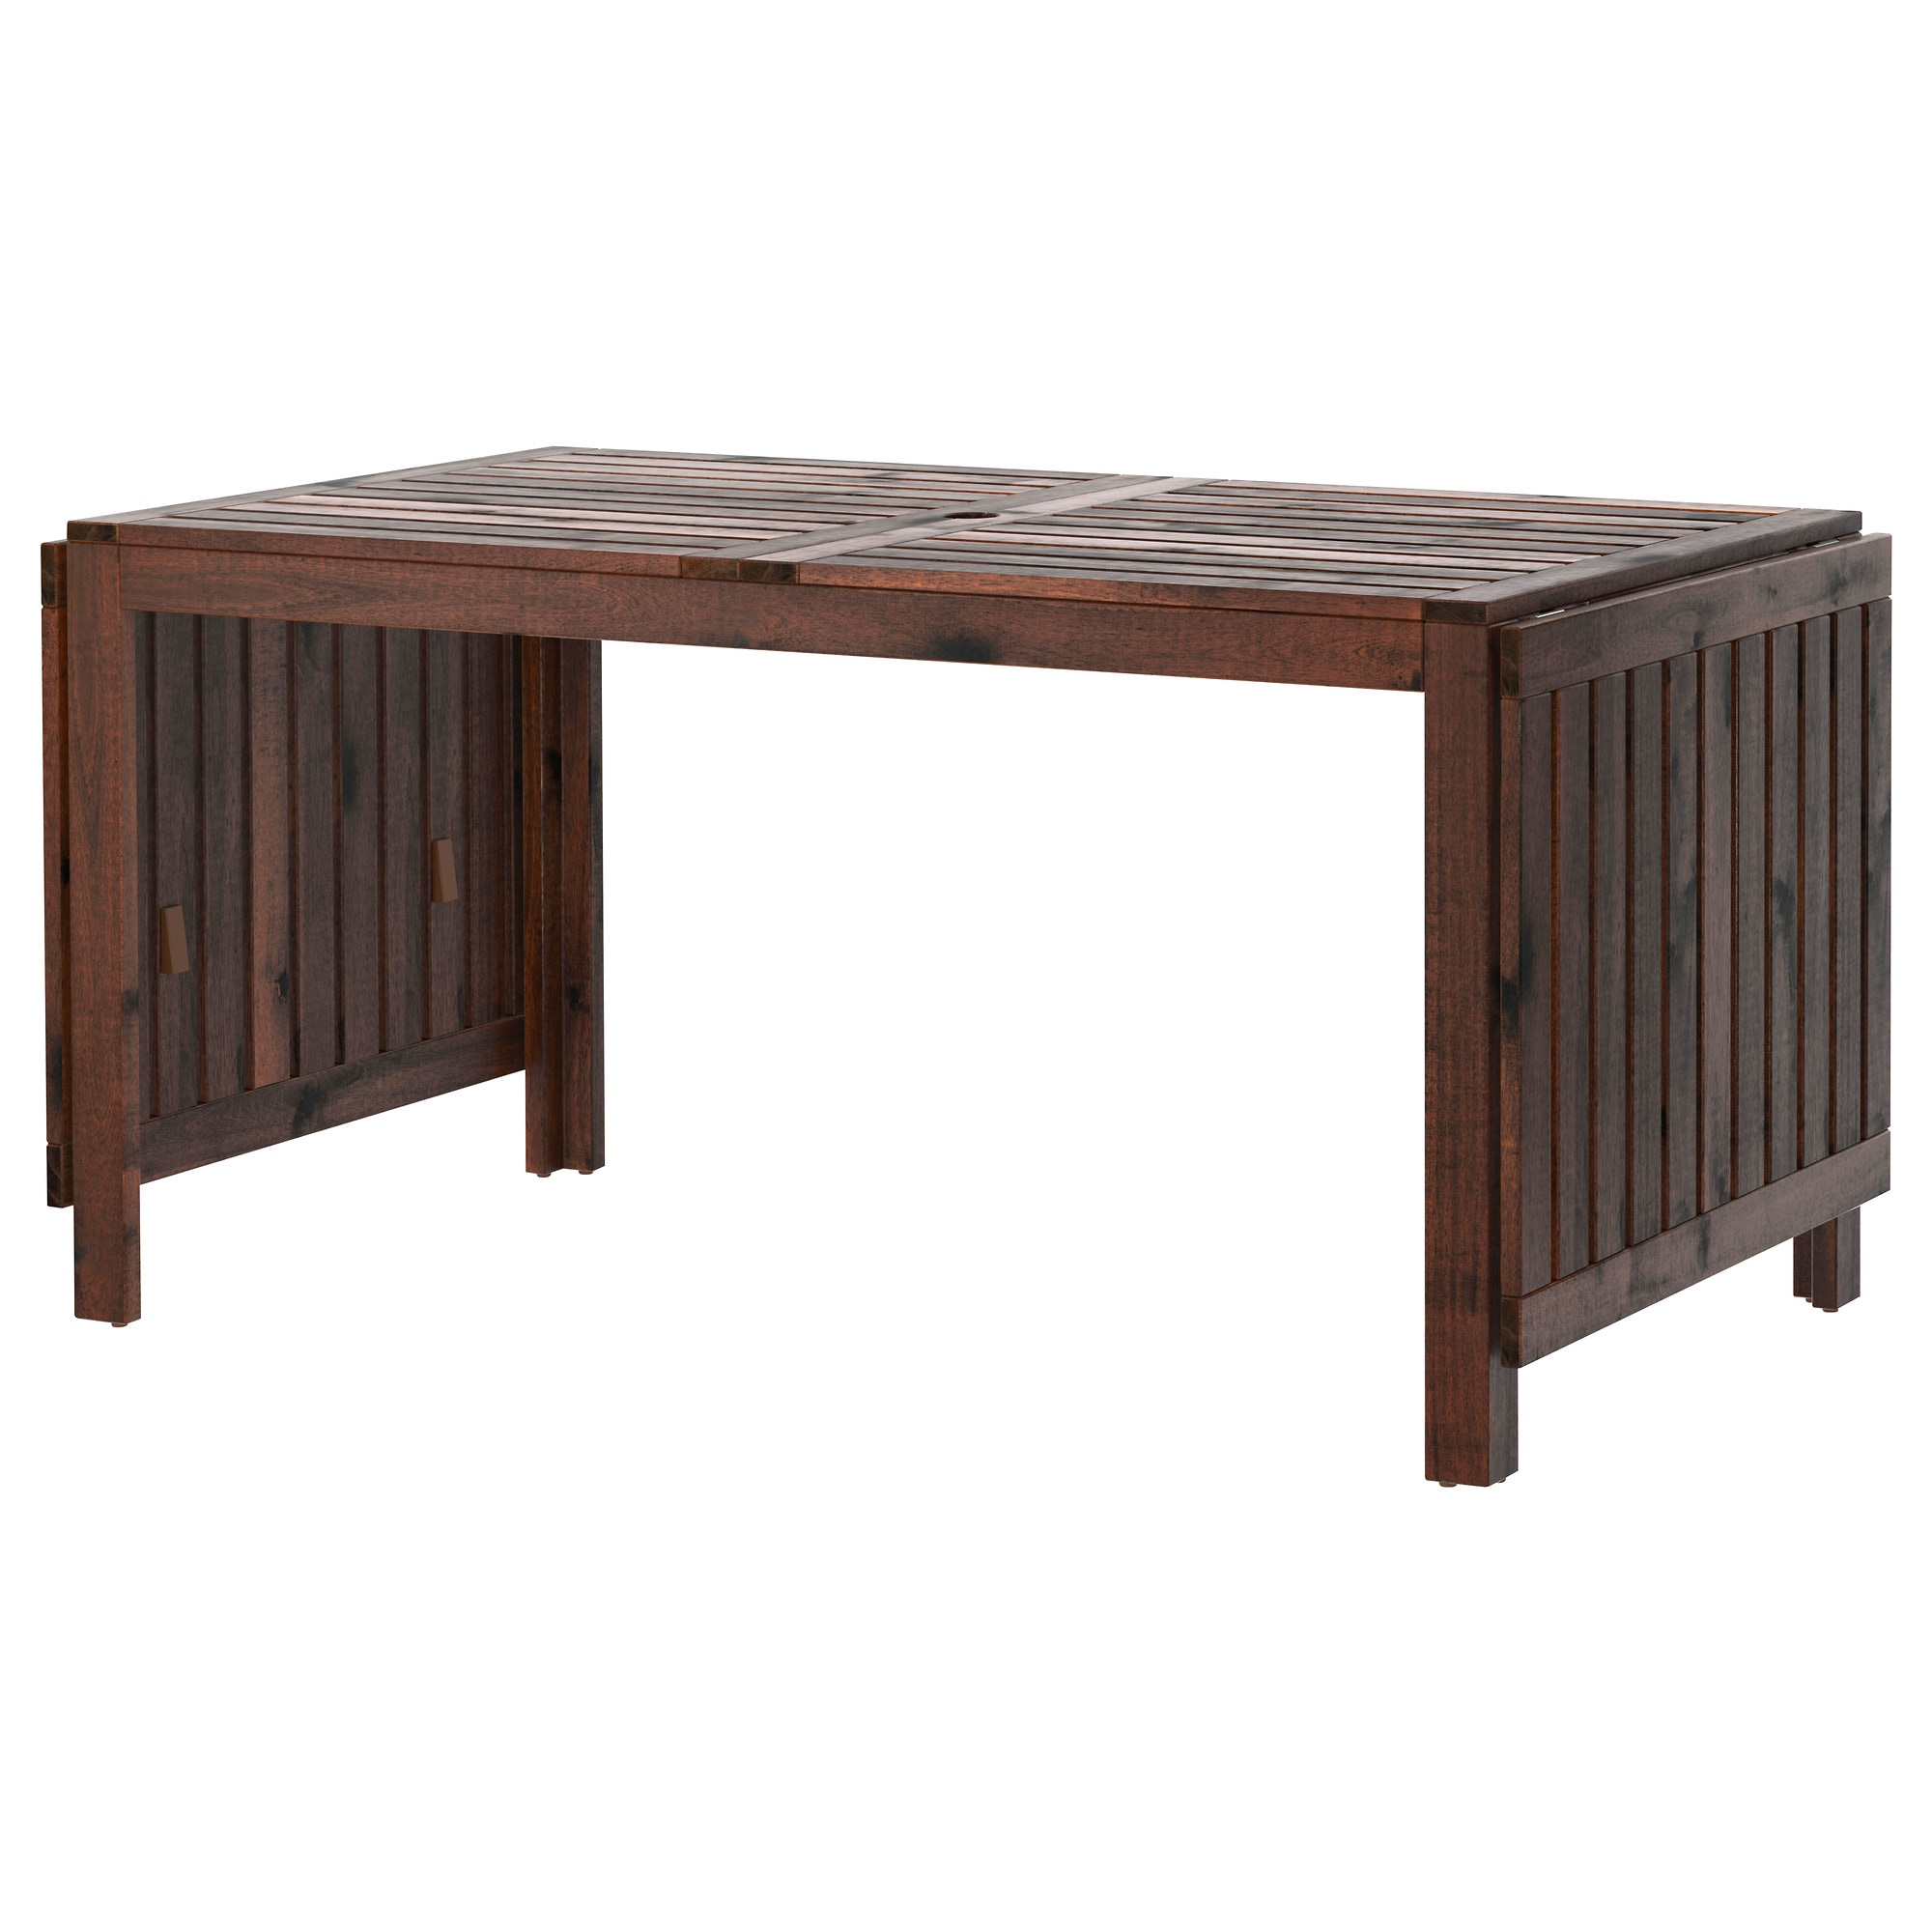 ÄPPLARÖ Drop Leaf Table, Outdoor